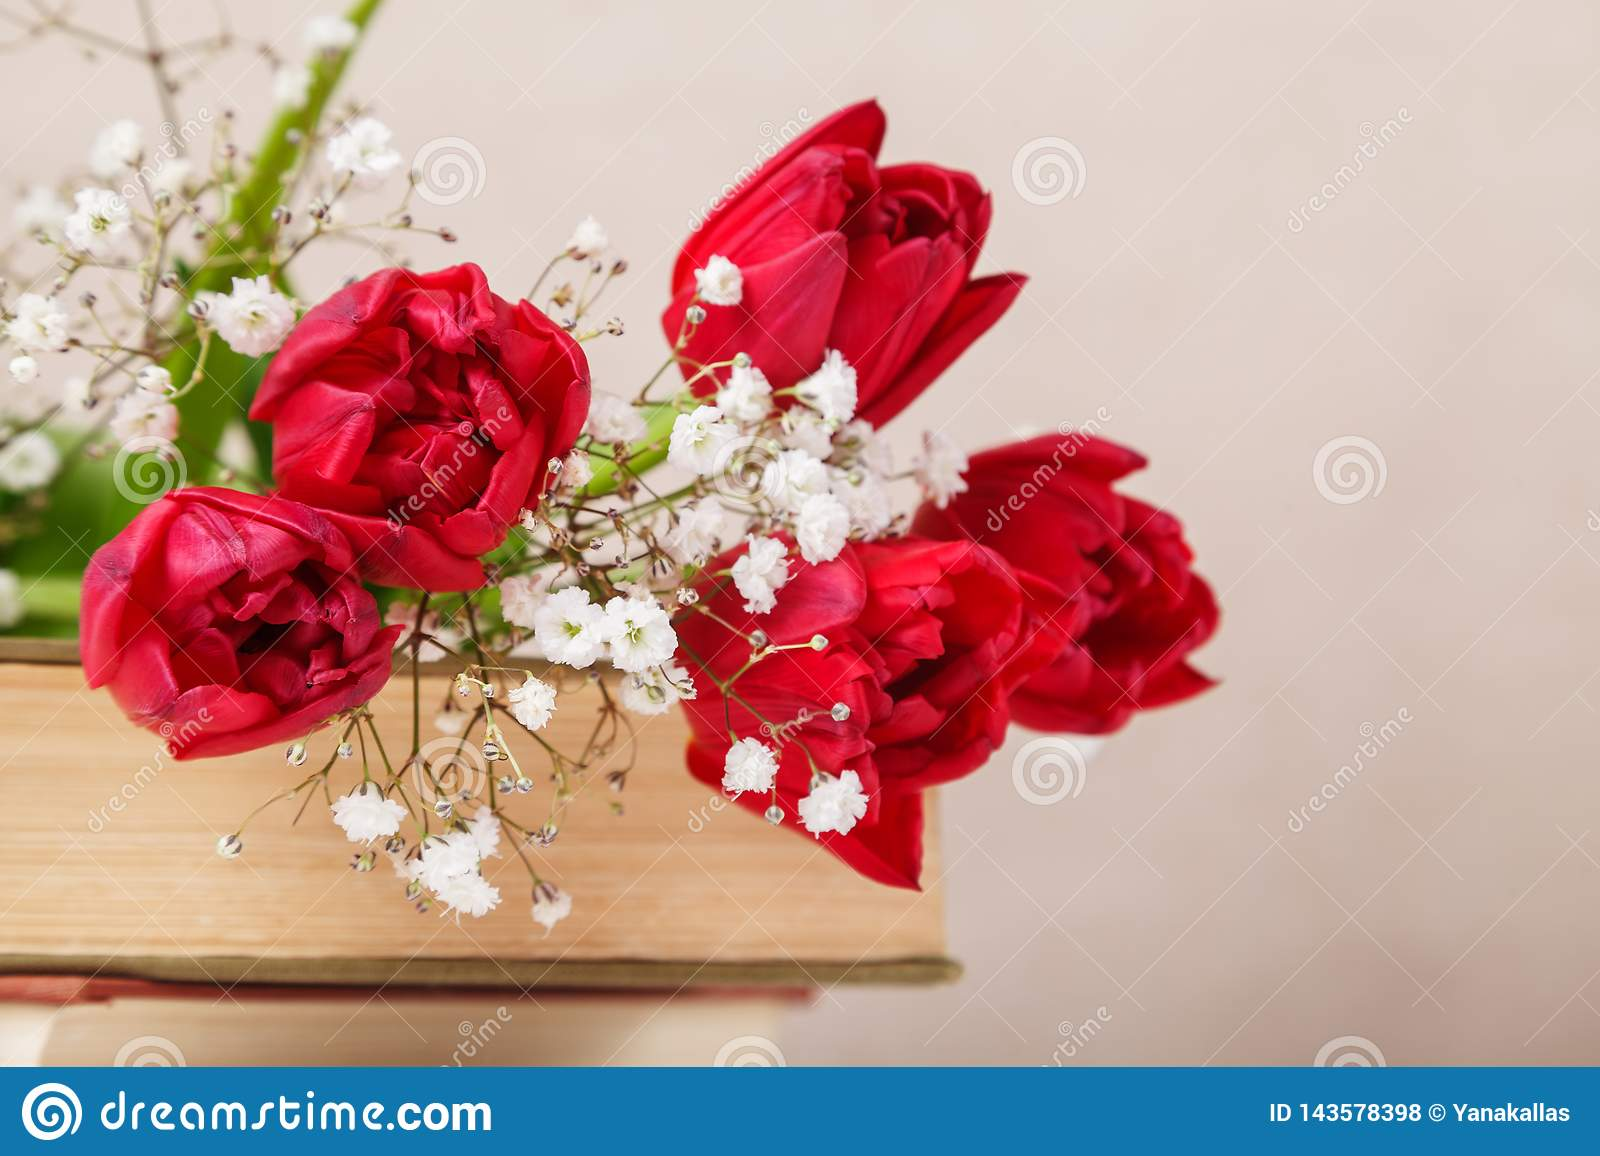 Vintage still Life with a spring red tulips and a books on a beige background. Mother`s day, women`s day concept